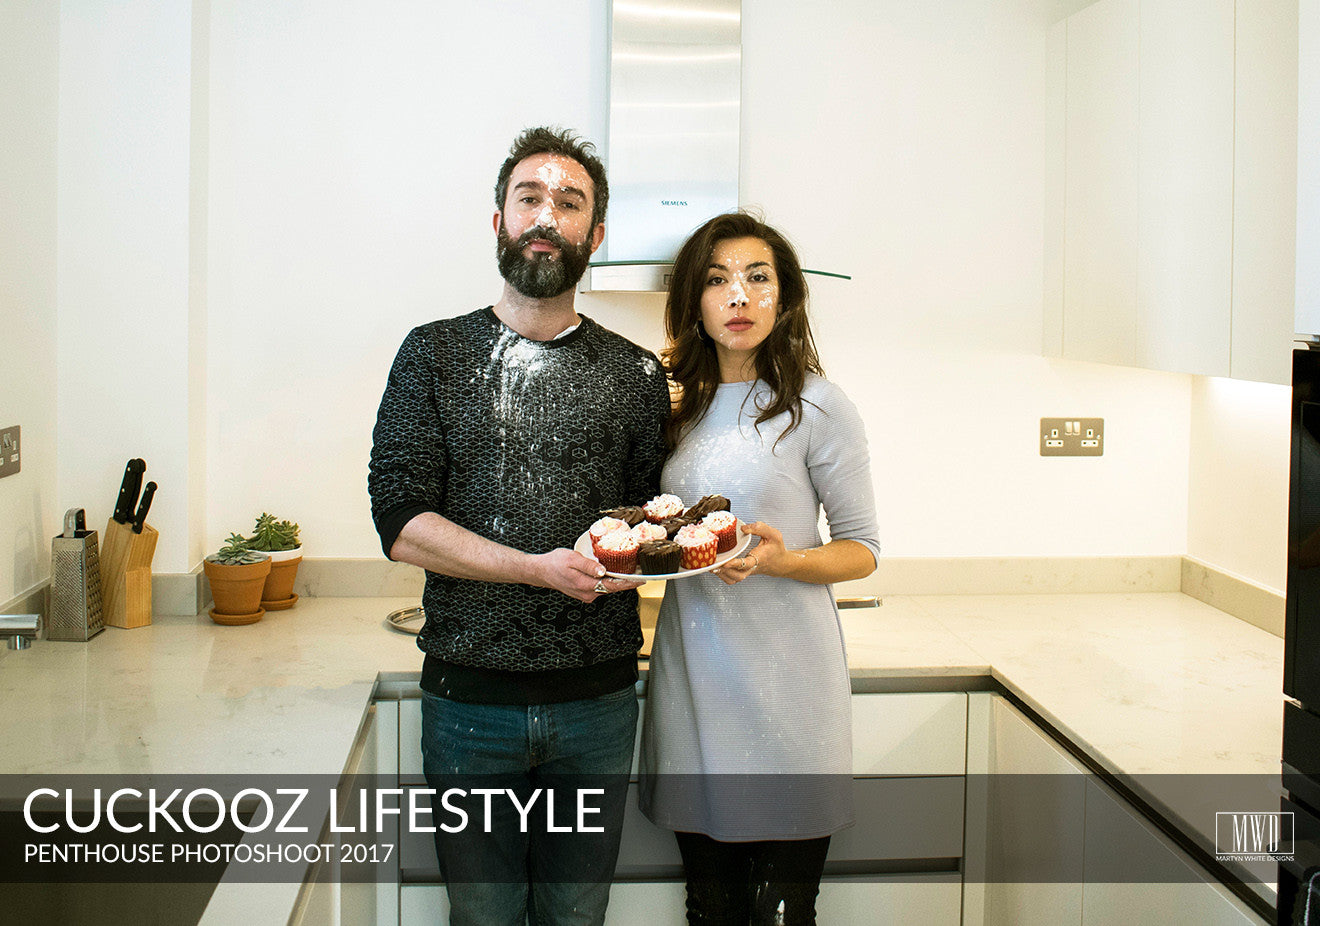 Cuckooz long stay serviced apartments London baking cakes